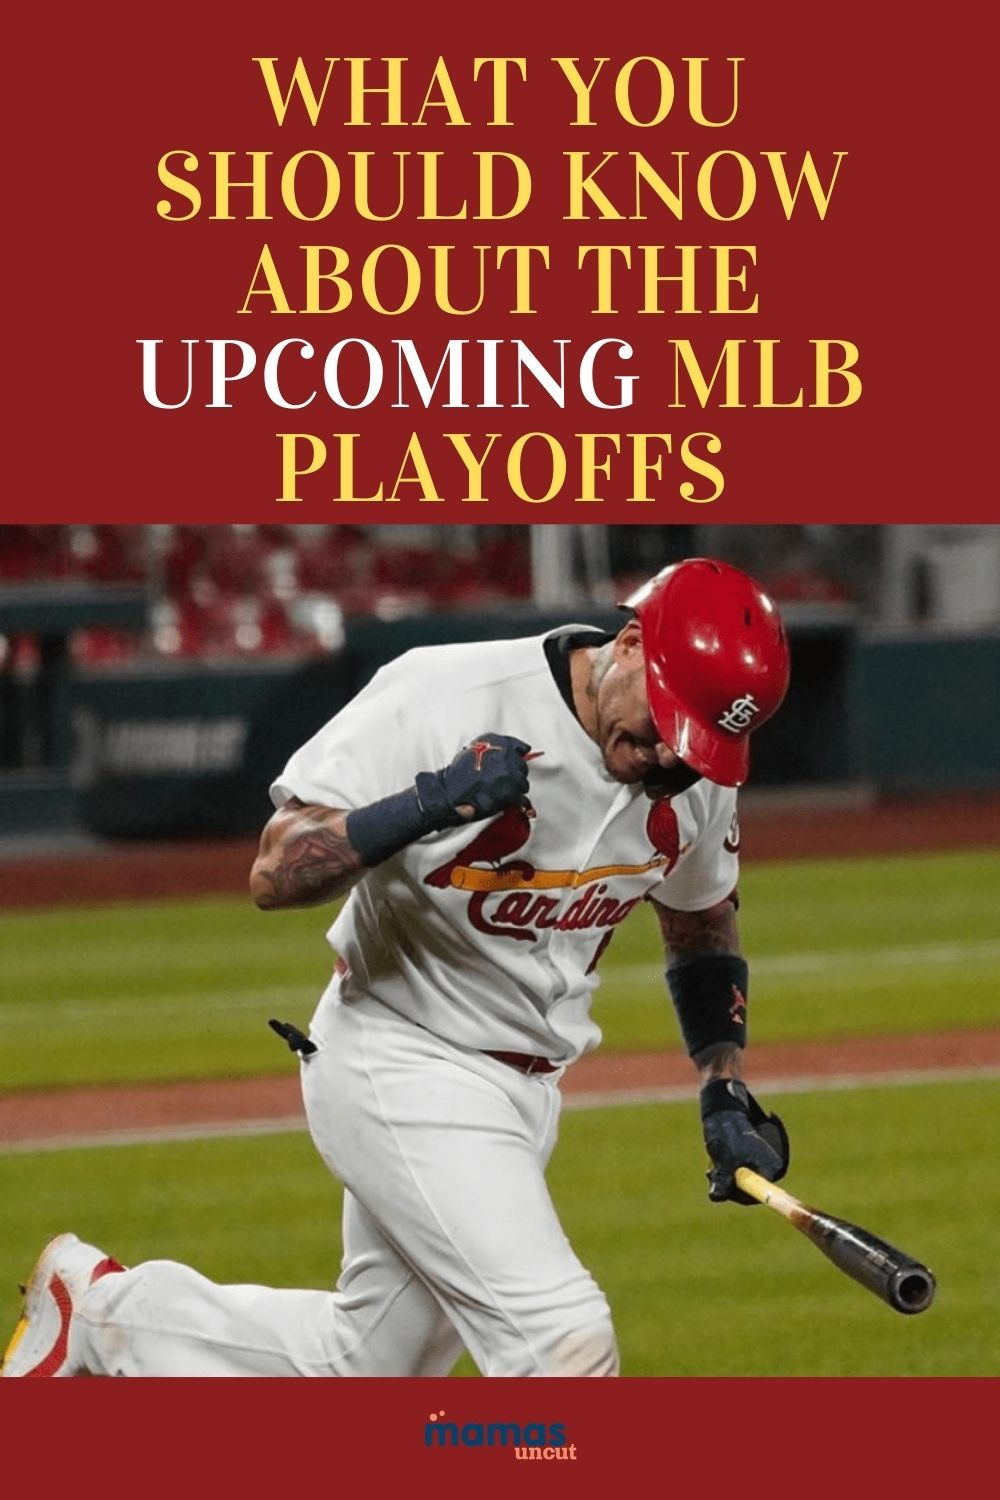 What You Should Know About The Upcoming Mlb Playoffs We Are Currently One Week Away From The Postseason Of What Migh